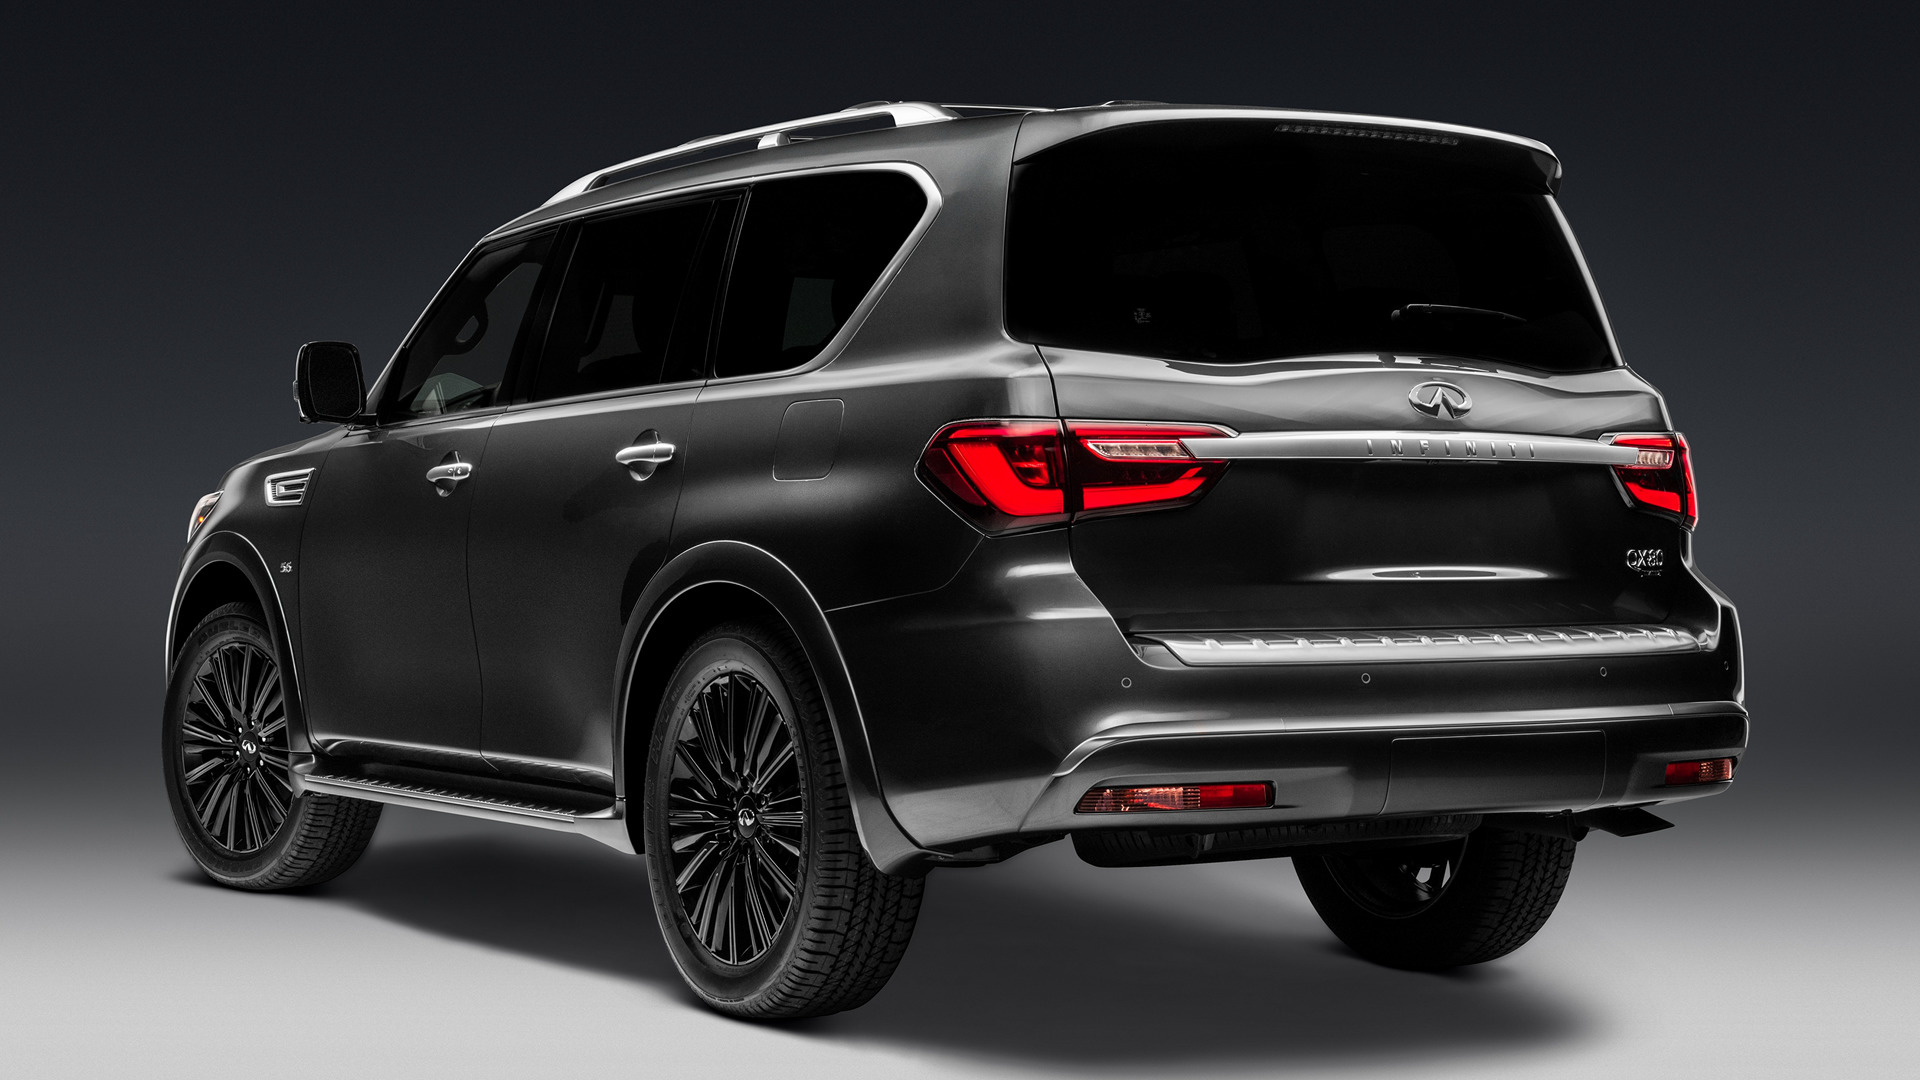 2019 Infiniti Qx80 Limited Wallpapers And Hd Images